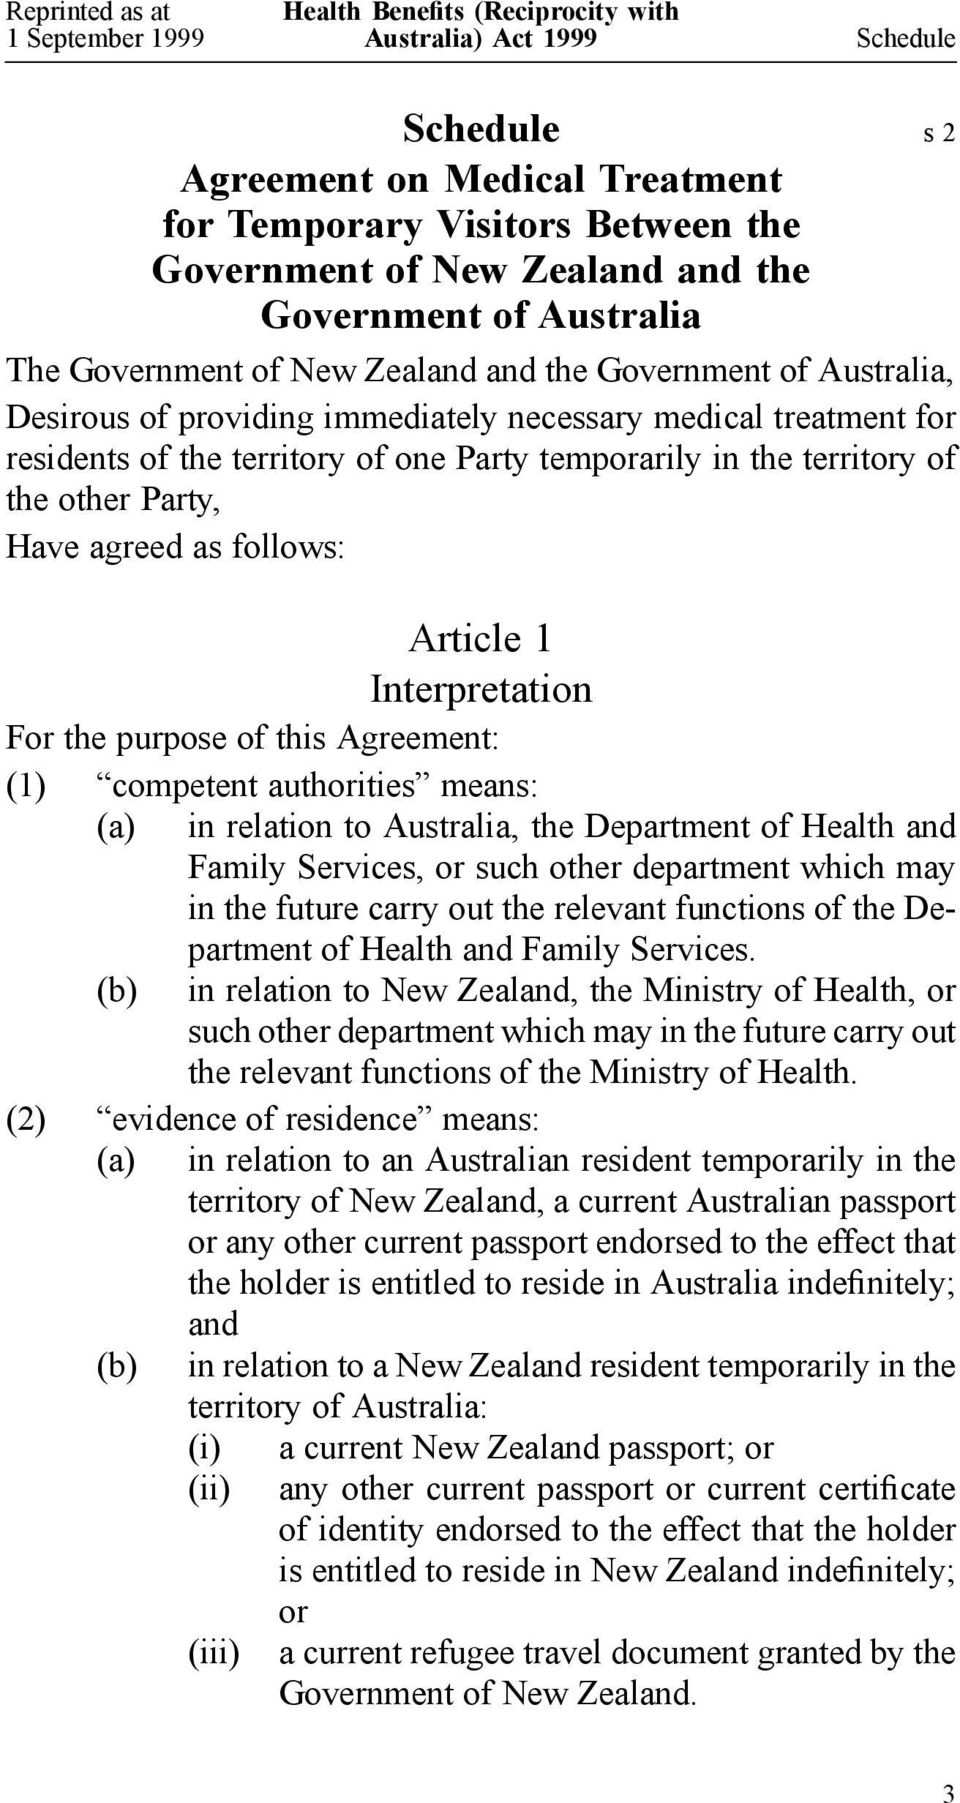 follows: Article 1 Interpretation For the purpose of this Agreement: (1) competent authorities means: (a) in relation to Australia, the Department of Health and Family Services, or such other